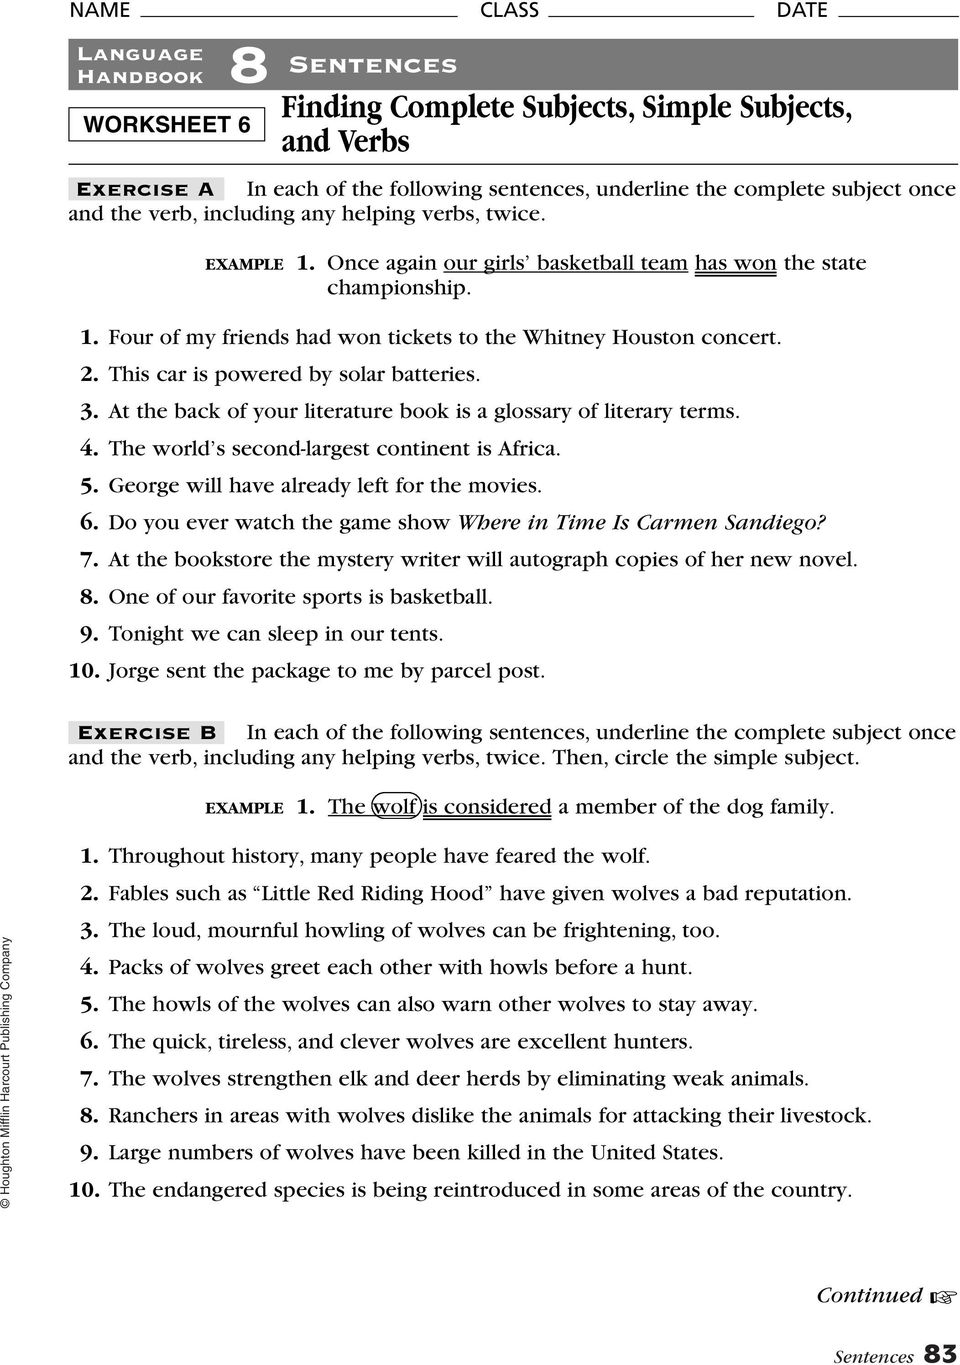 medium resolution of 8 Sentences. Finding Subjects and Predicates. Language Handbook. Exercise A  Use a vertical line to separate the complete subject and the complete - PDF  Free Download